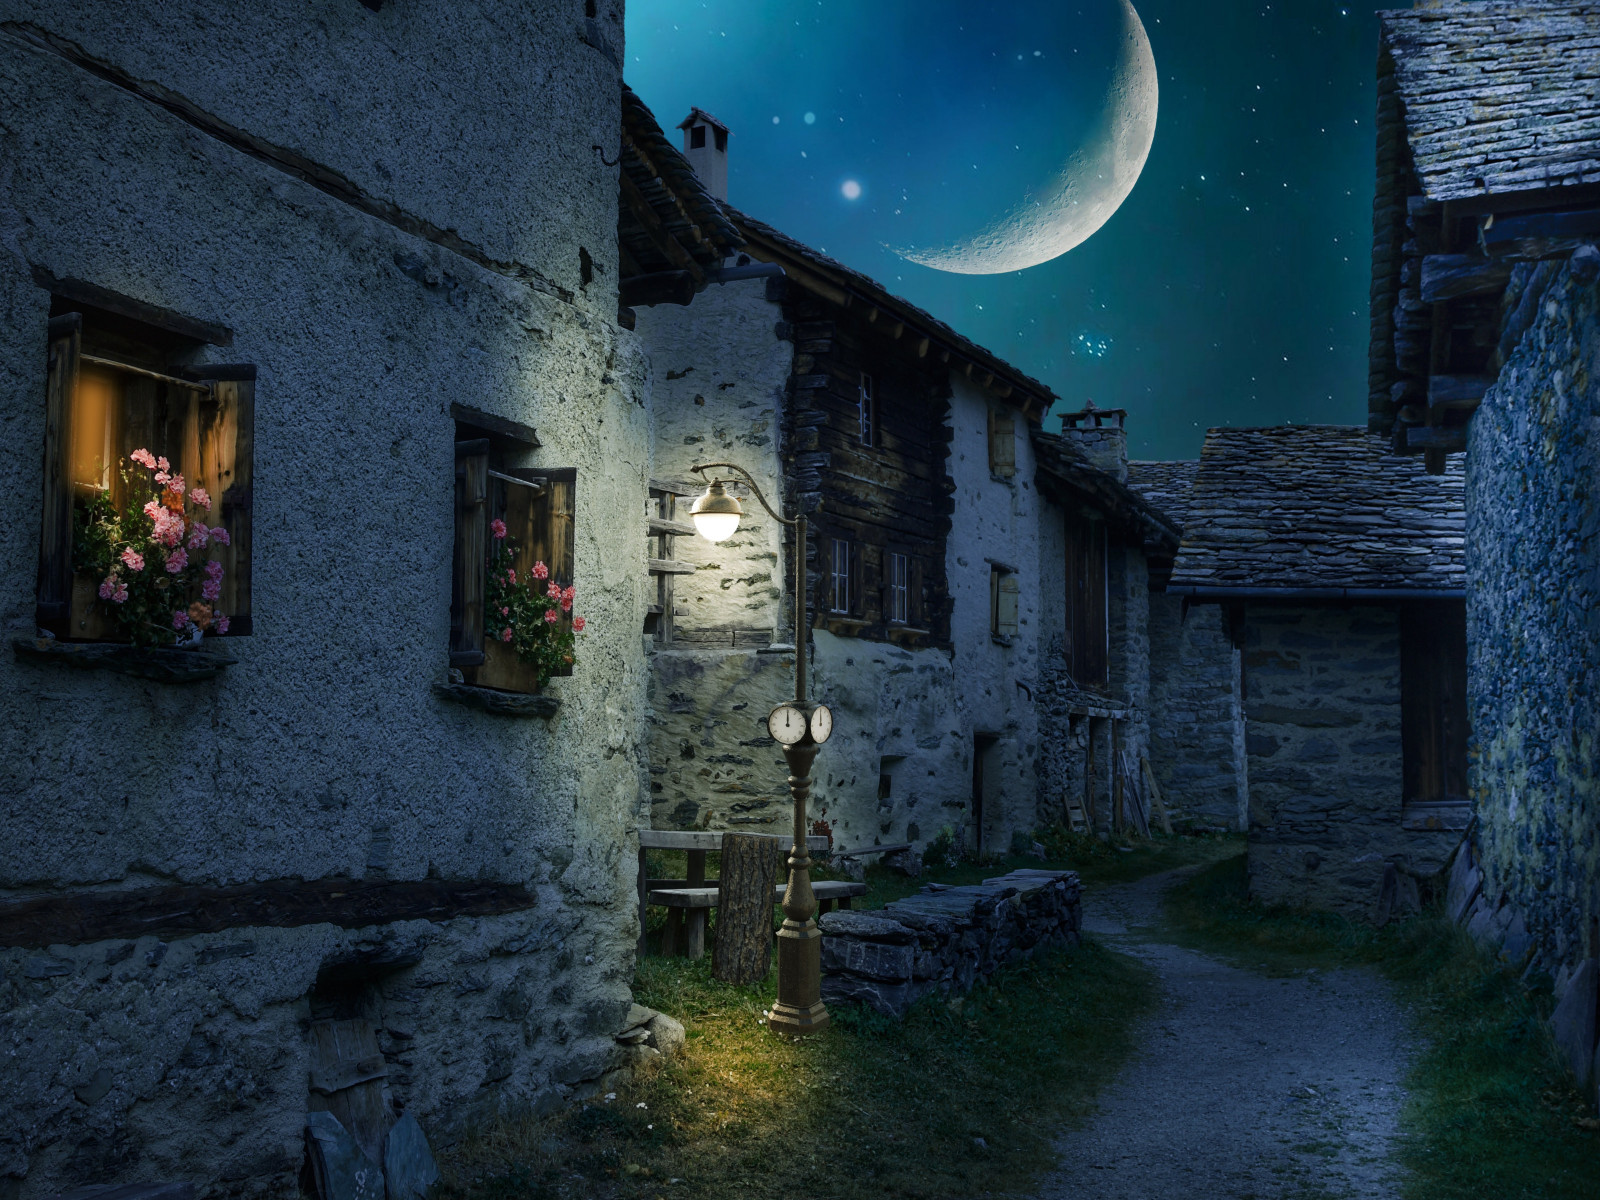 Walk through the medieval city under the moonlight wallpaper 1600x1200